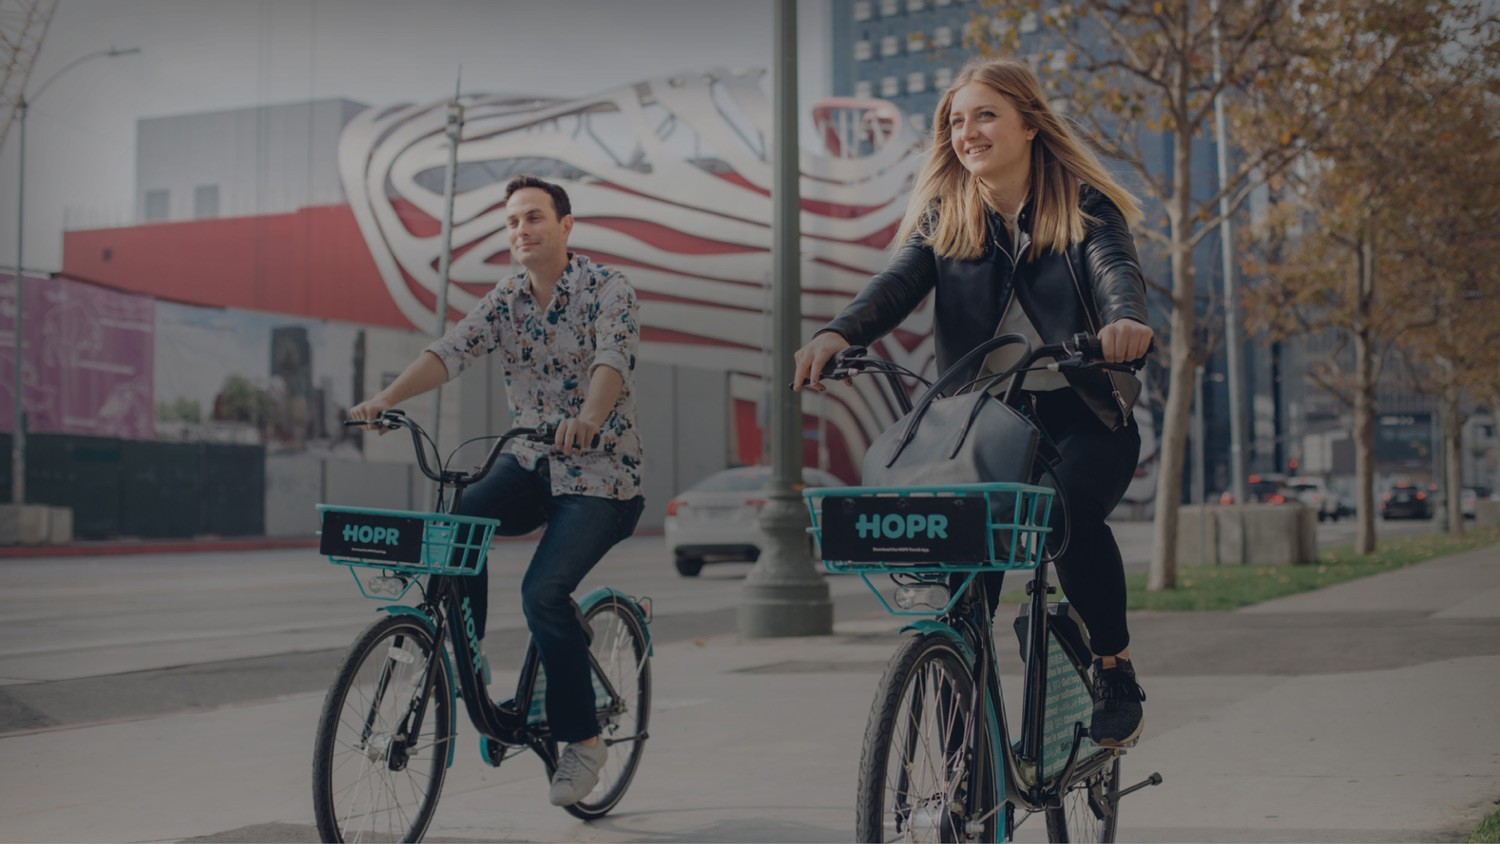 Hop around in Los Angeles with HOPR Bike Share & Scooter Share